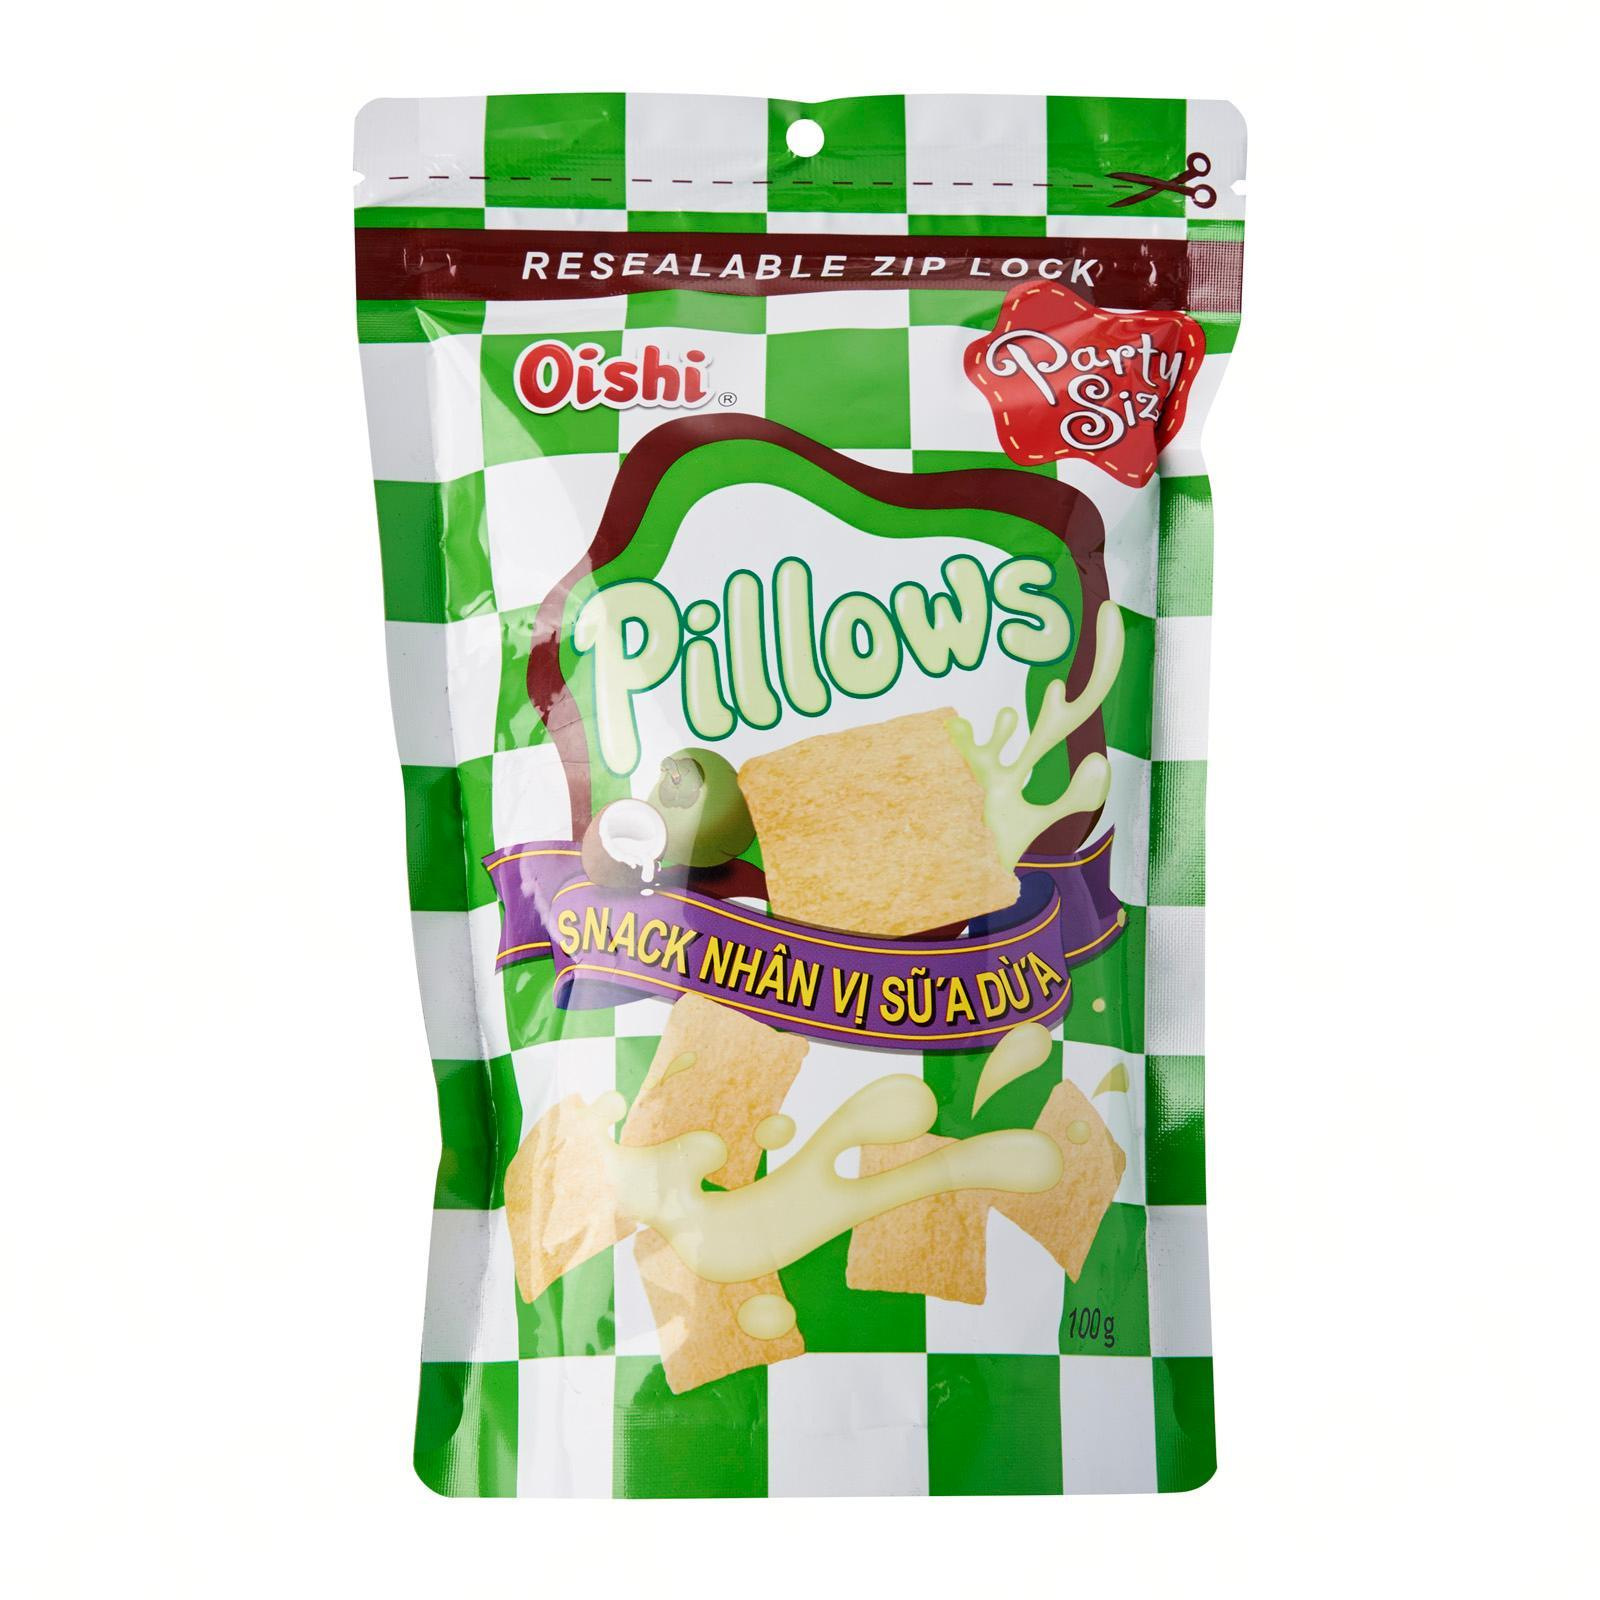 Oishi Pillows Coconut Filled Crackers